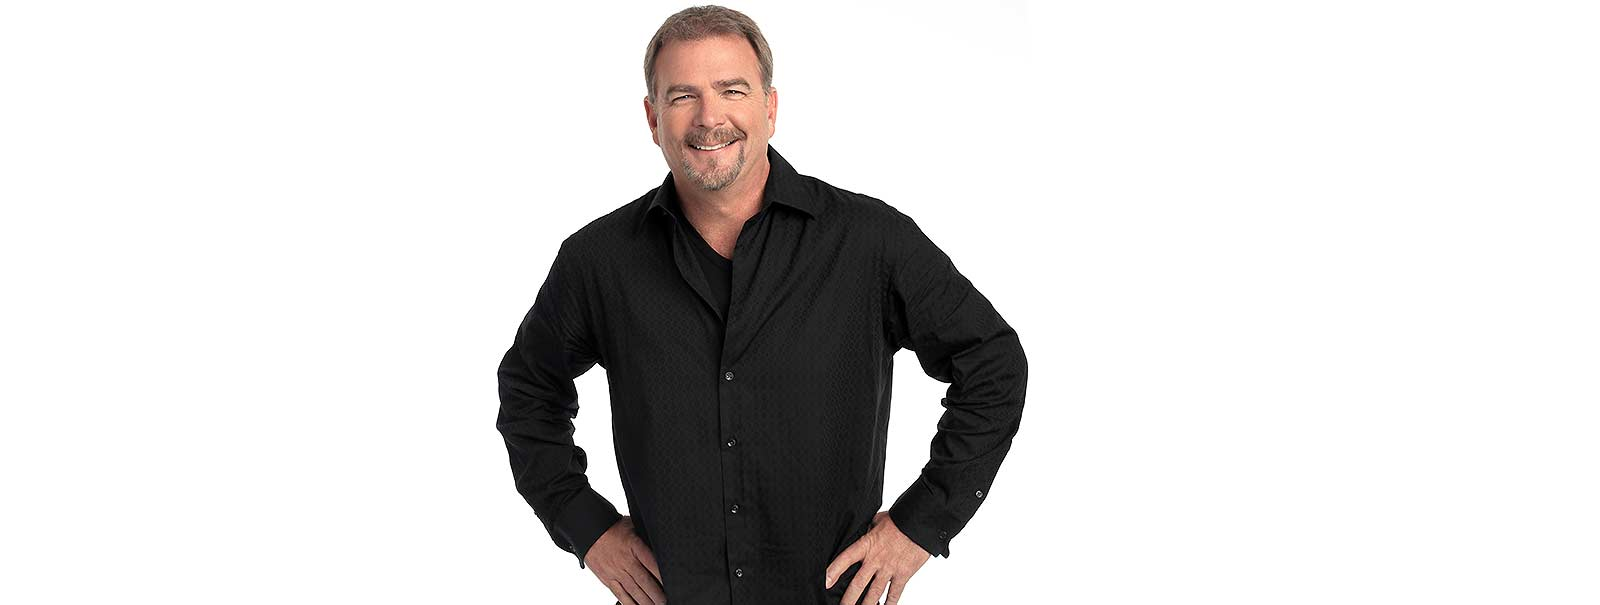 More Info - Bill Engvall